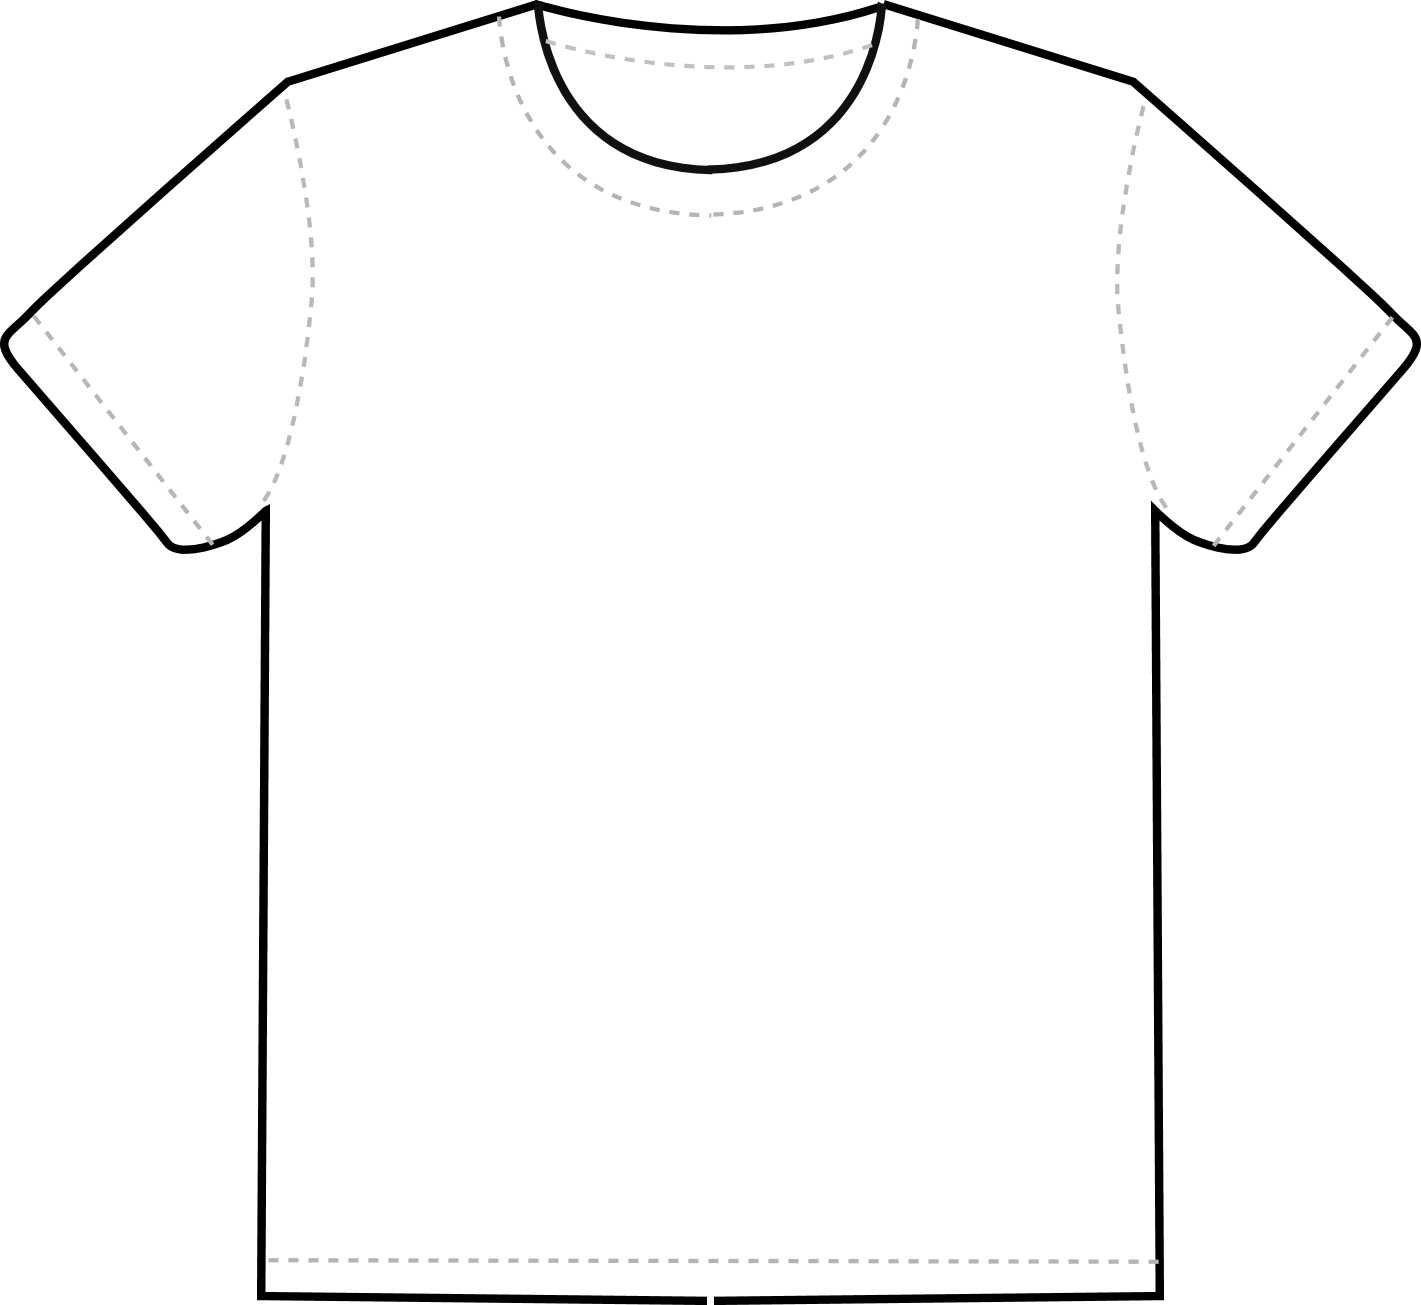 Free Blank T Shirt Outline, Download Free Clip Art, Free Within Blank T Shirt Outline Template